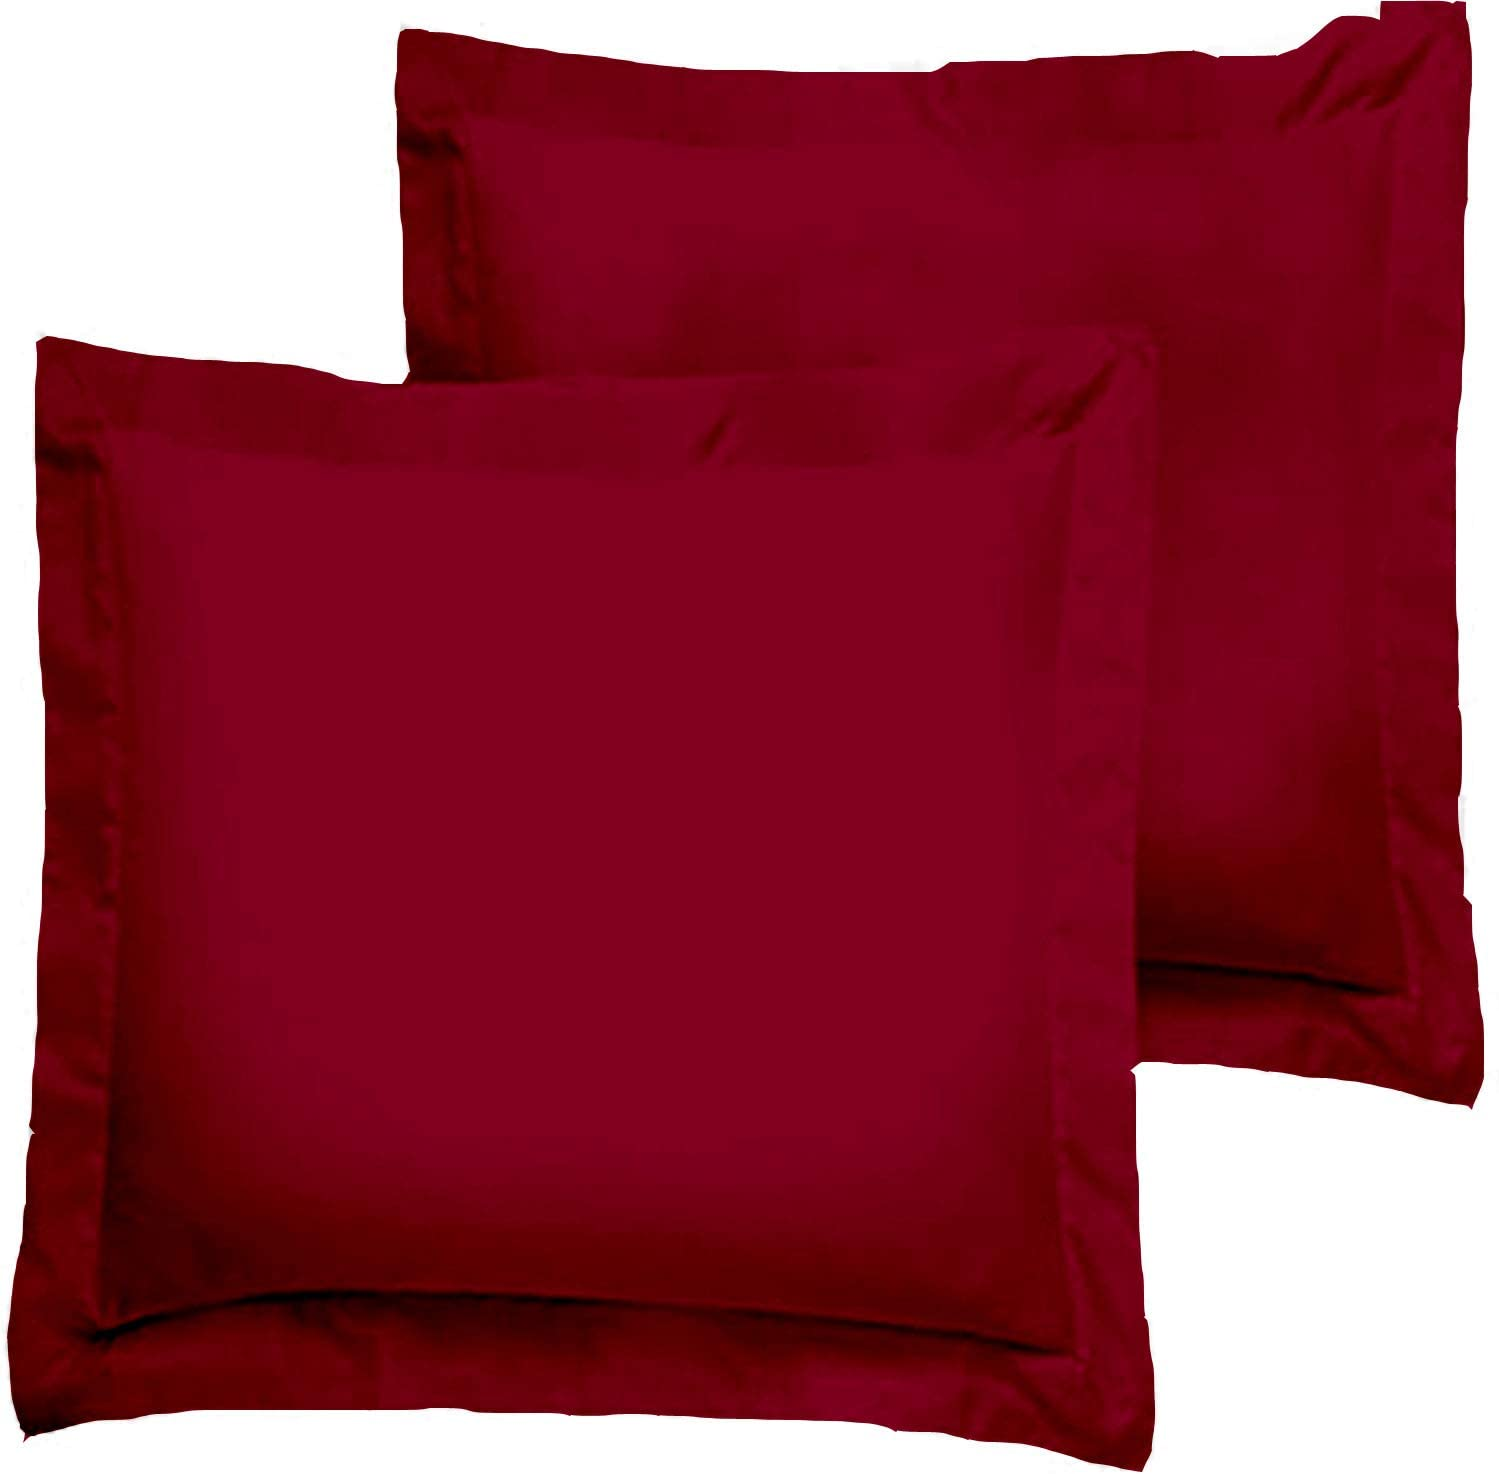 Trust Layer 800 Thread Count 100% Organic Cotton Throw Pillow Sized 20 x 20 inch Pillow Shams Set of 2 Burgundy Solid